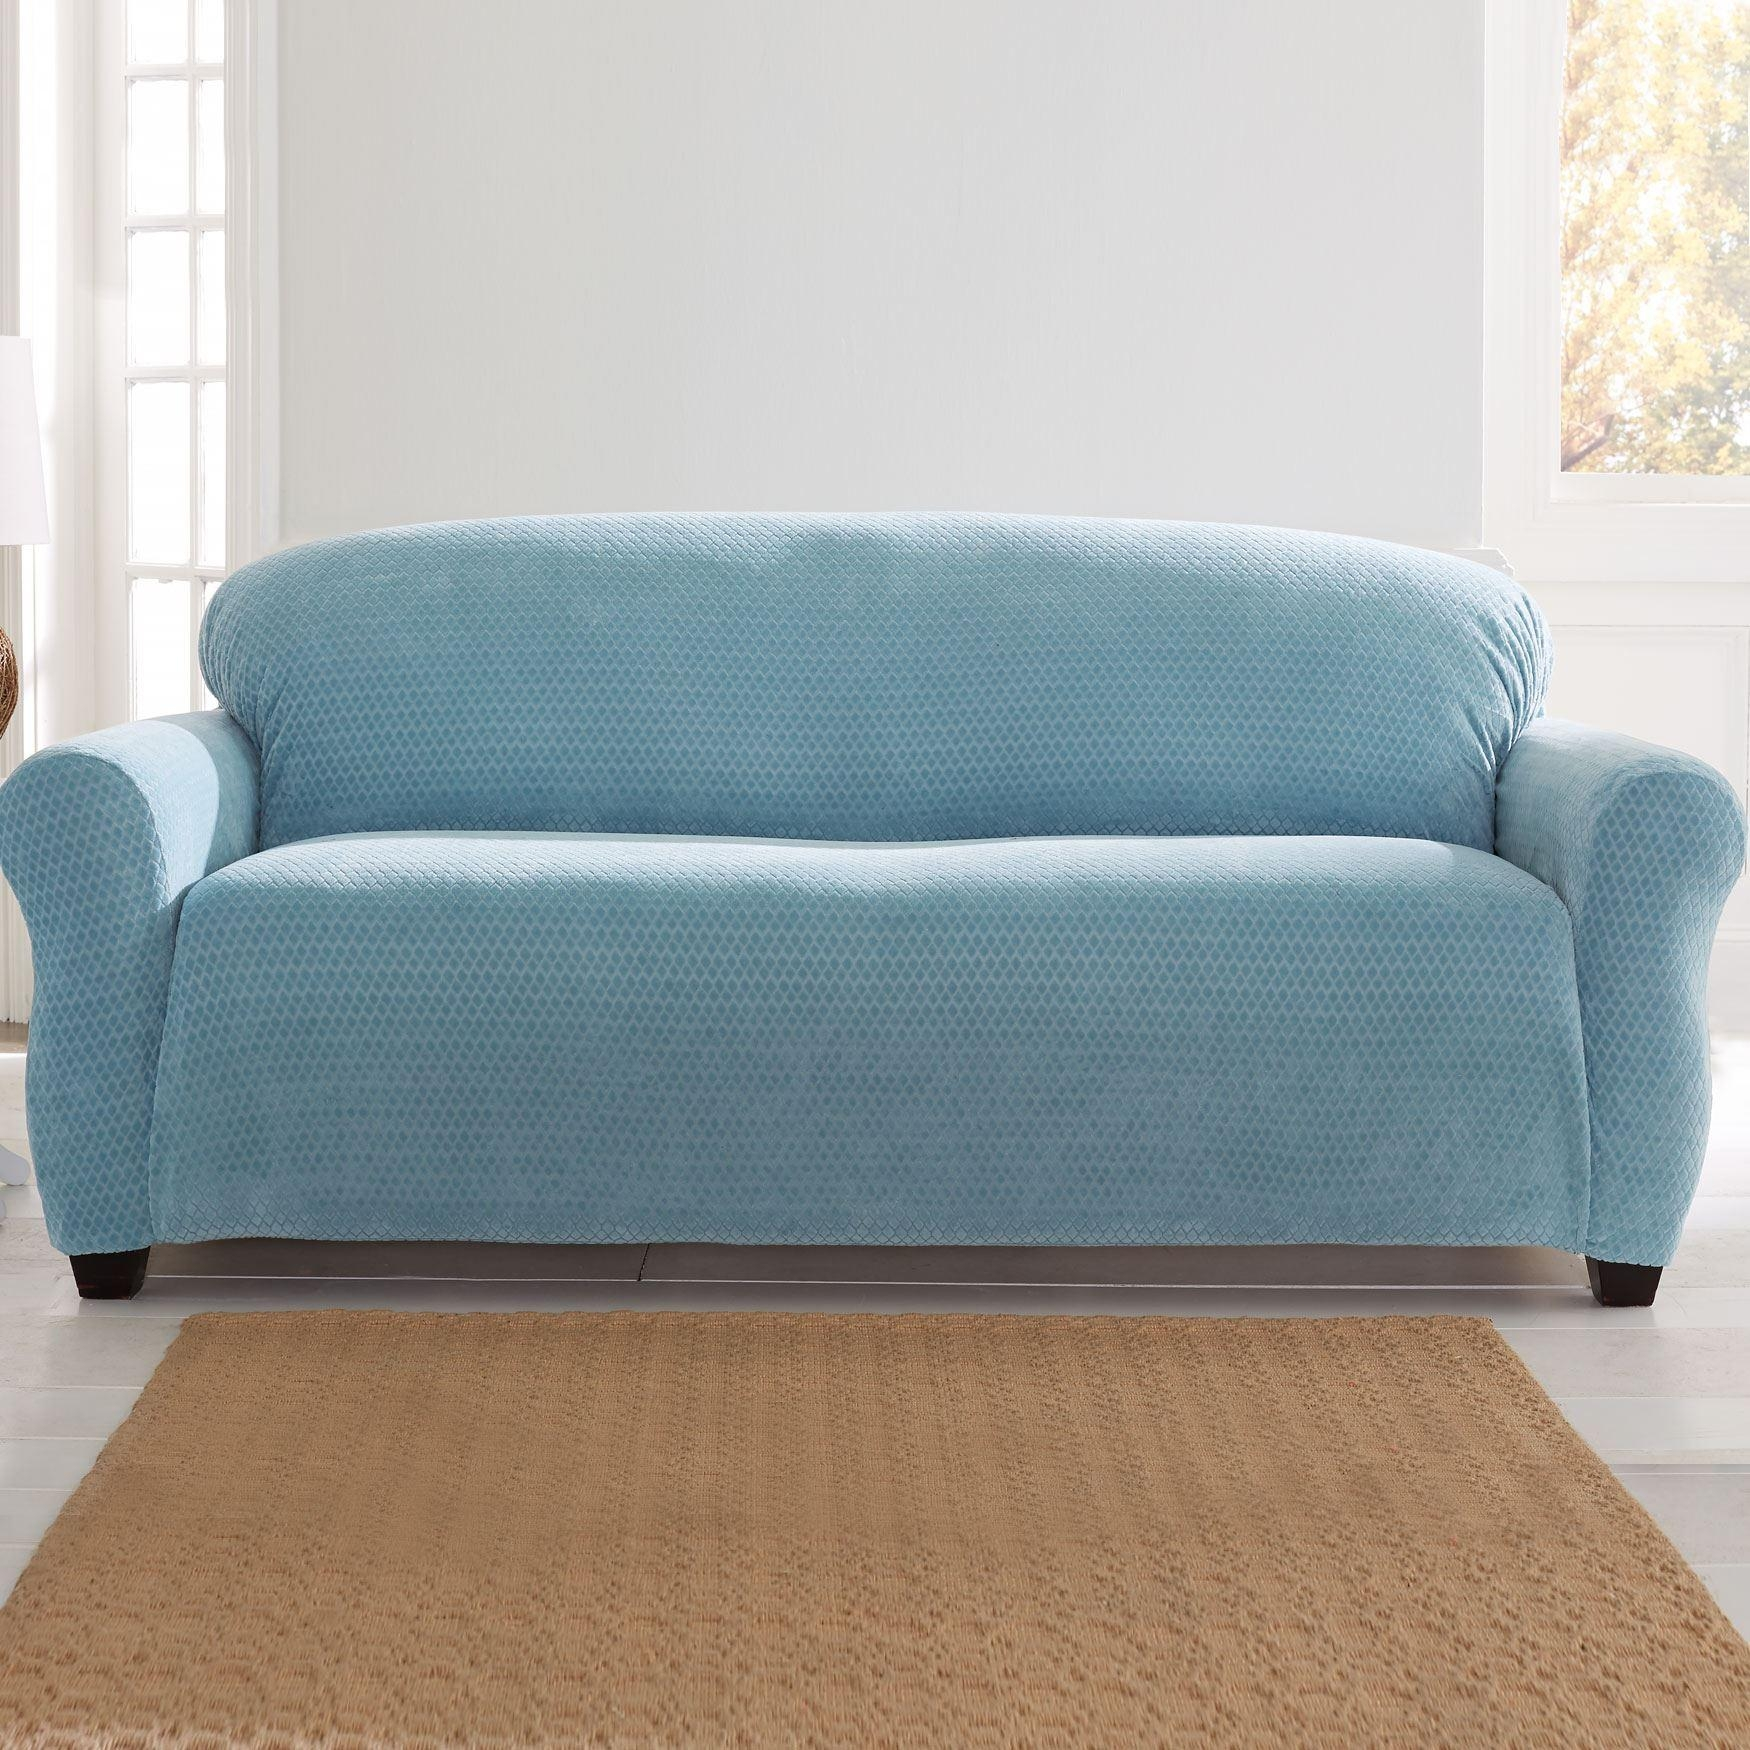 Furniture: Cool Stretch Sofa Covers To Protect And Renew Your Sofa Pertaining To Stretch Slipcovers For Sofas (Image 5 of 20)